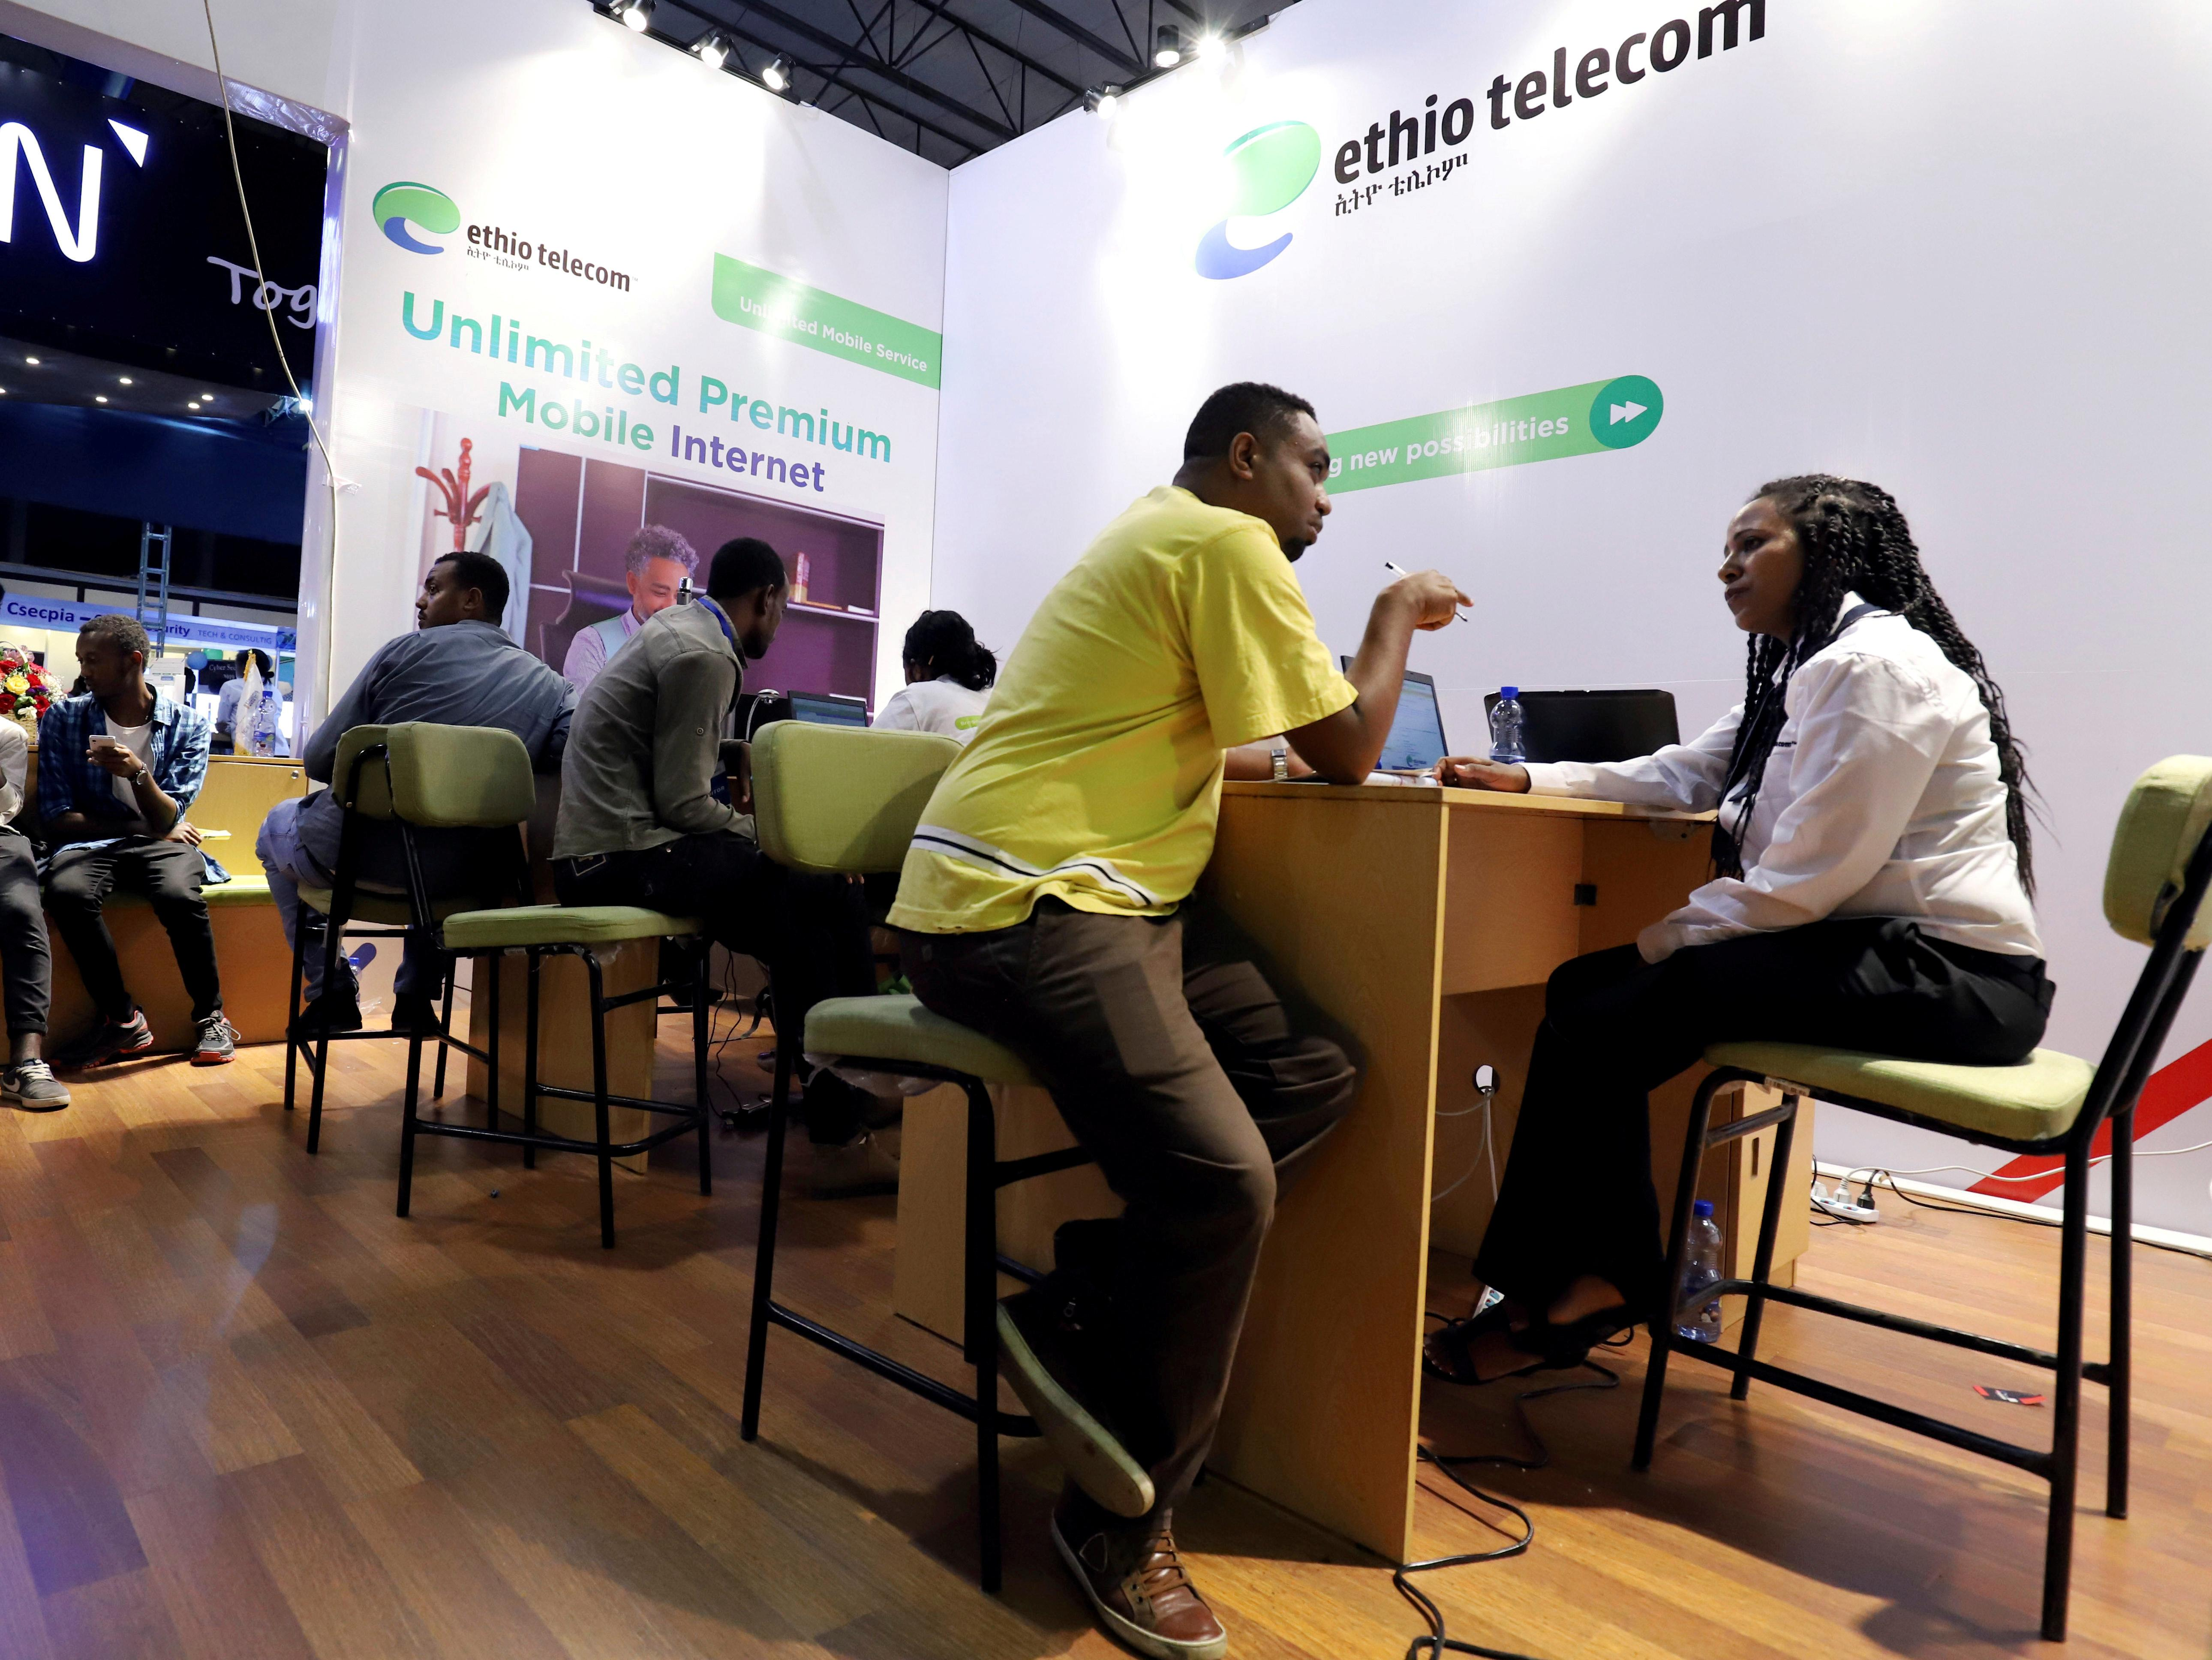 Exclusive: Ethiopia plans to issue telco licenses by year-end - Reuters